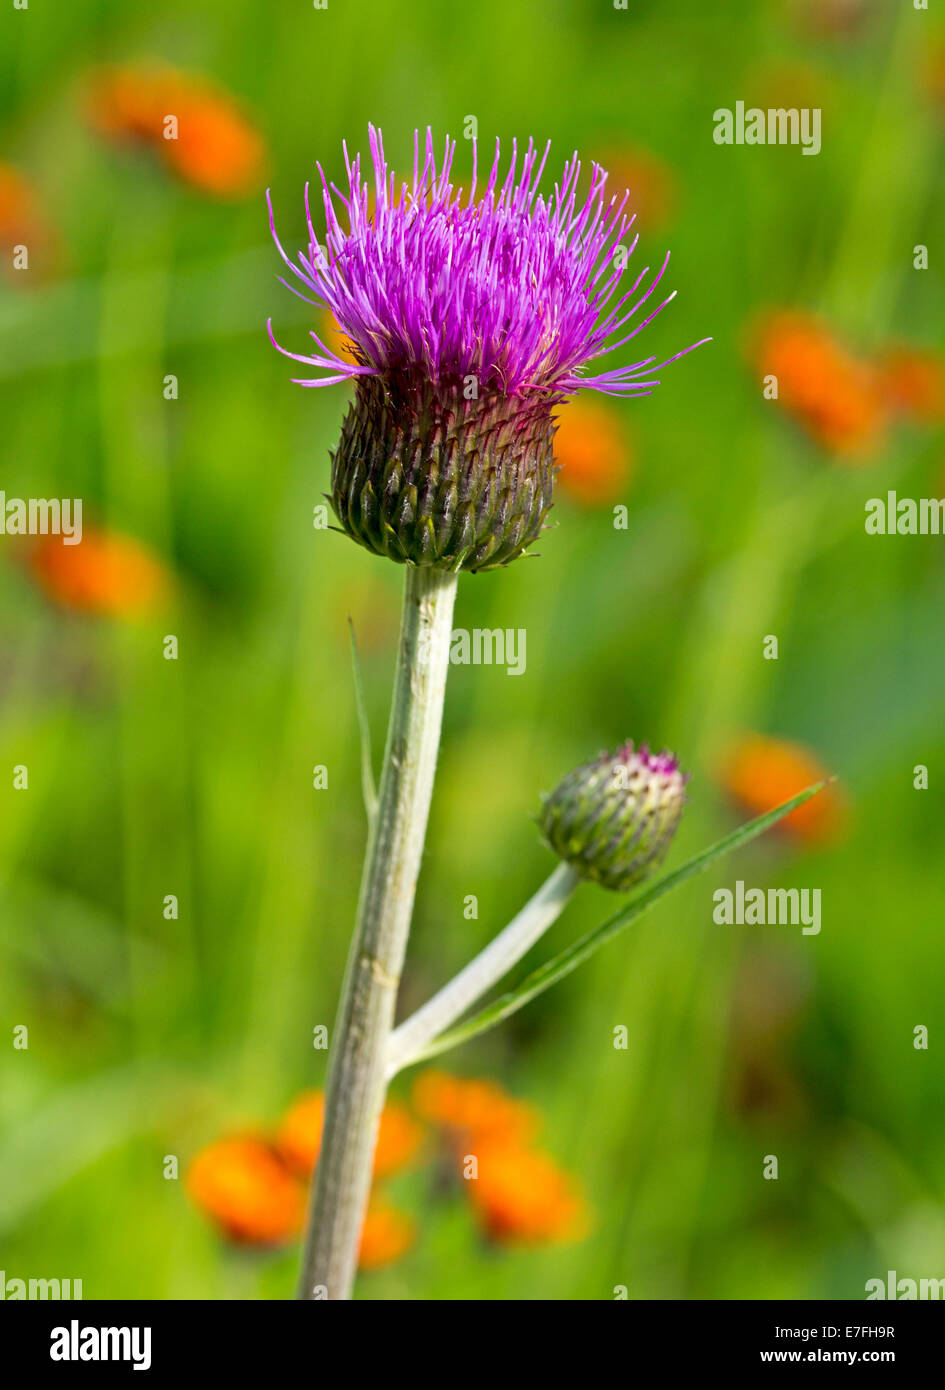 British wildflowers, mauve flower and bud of brook thistle, Cirsium rivulare, against green background near Pitlochry, - Stock Image